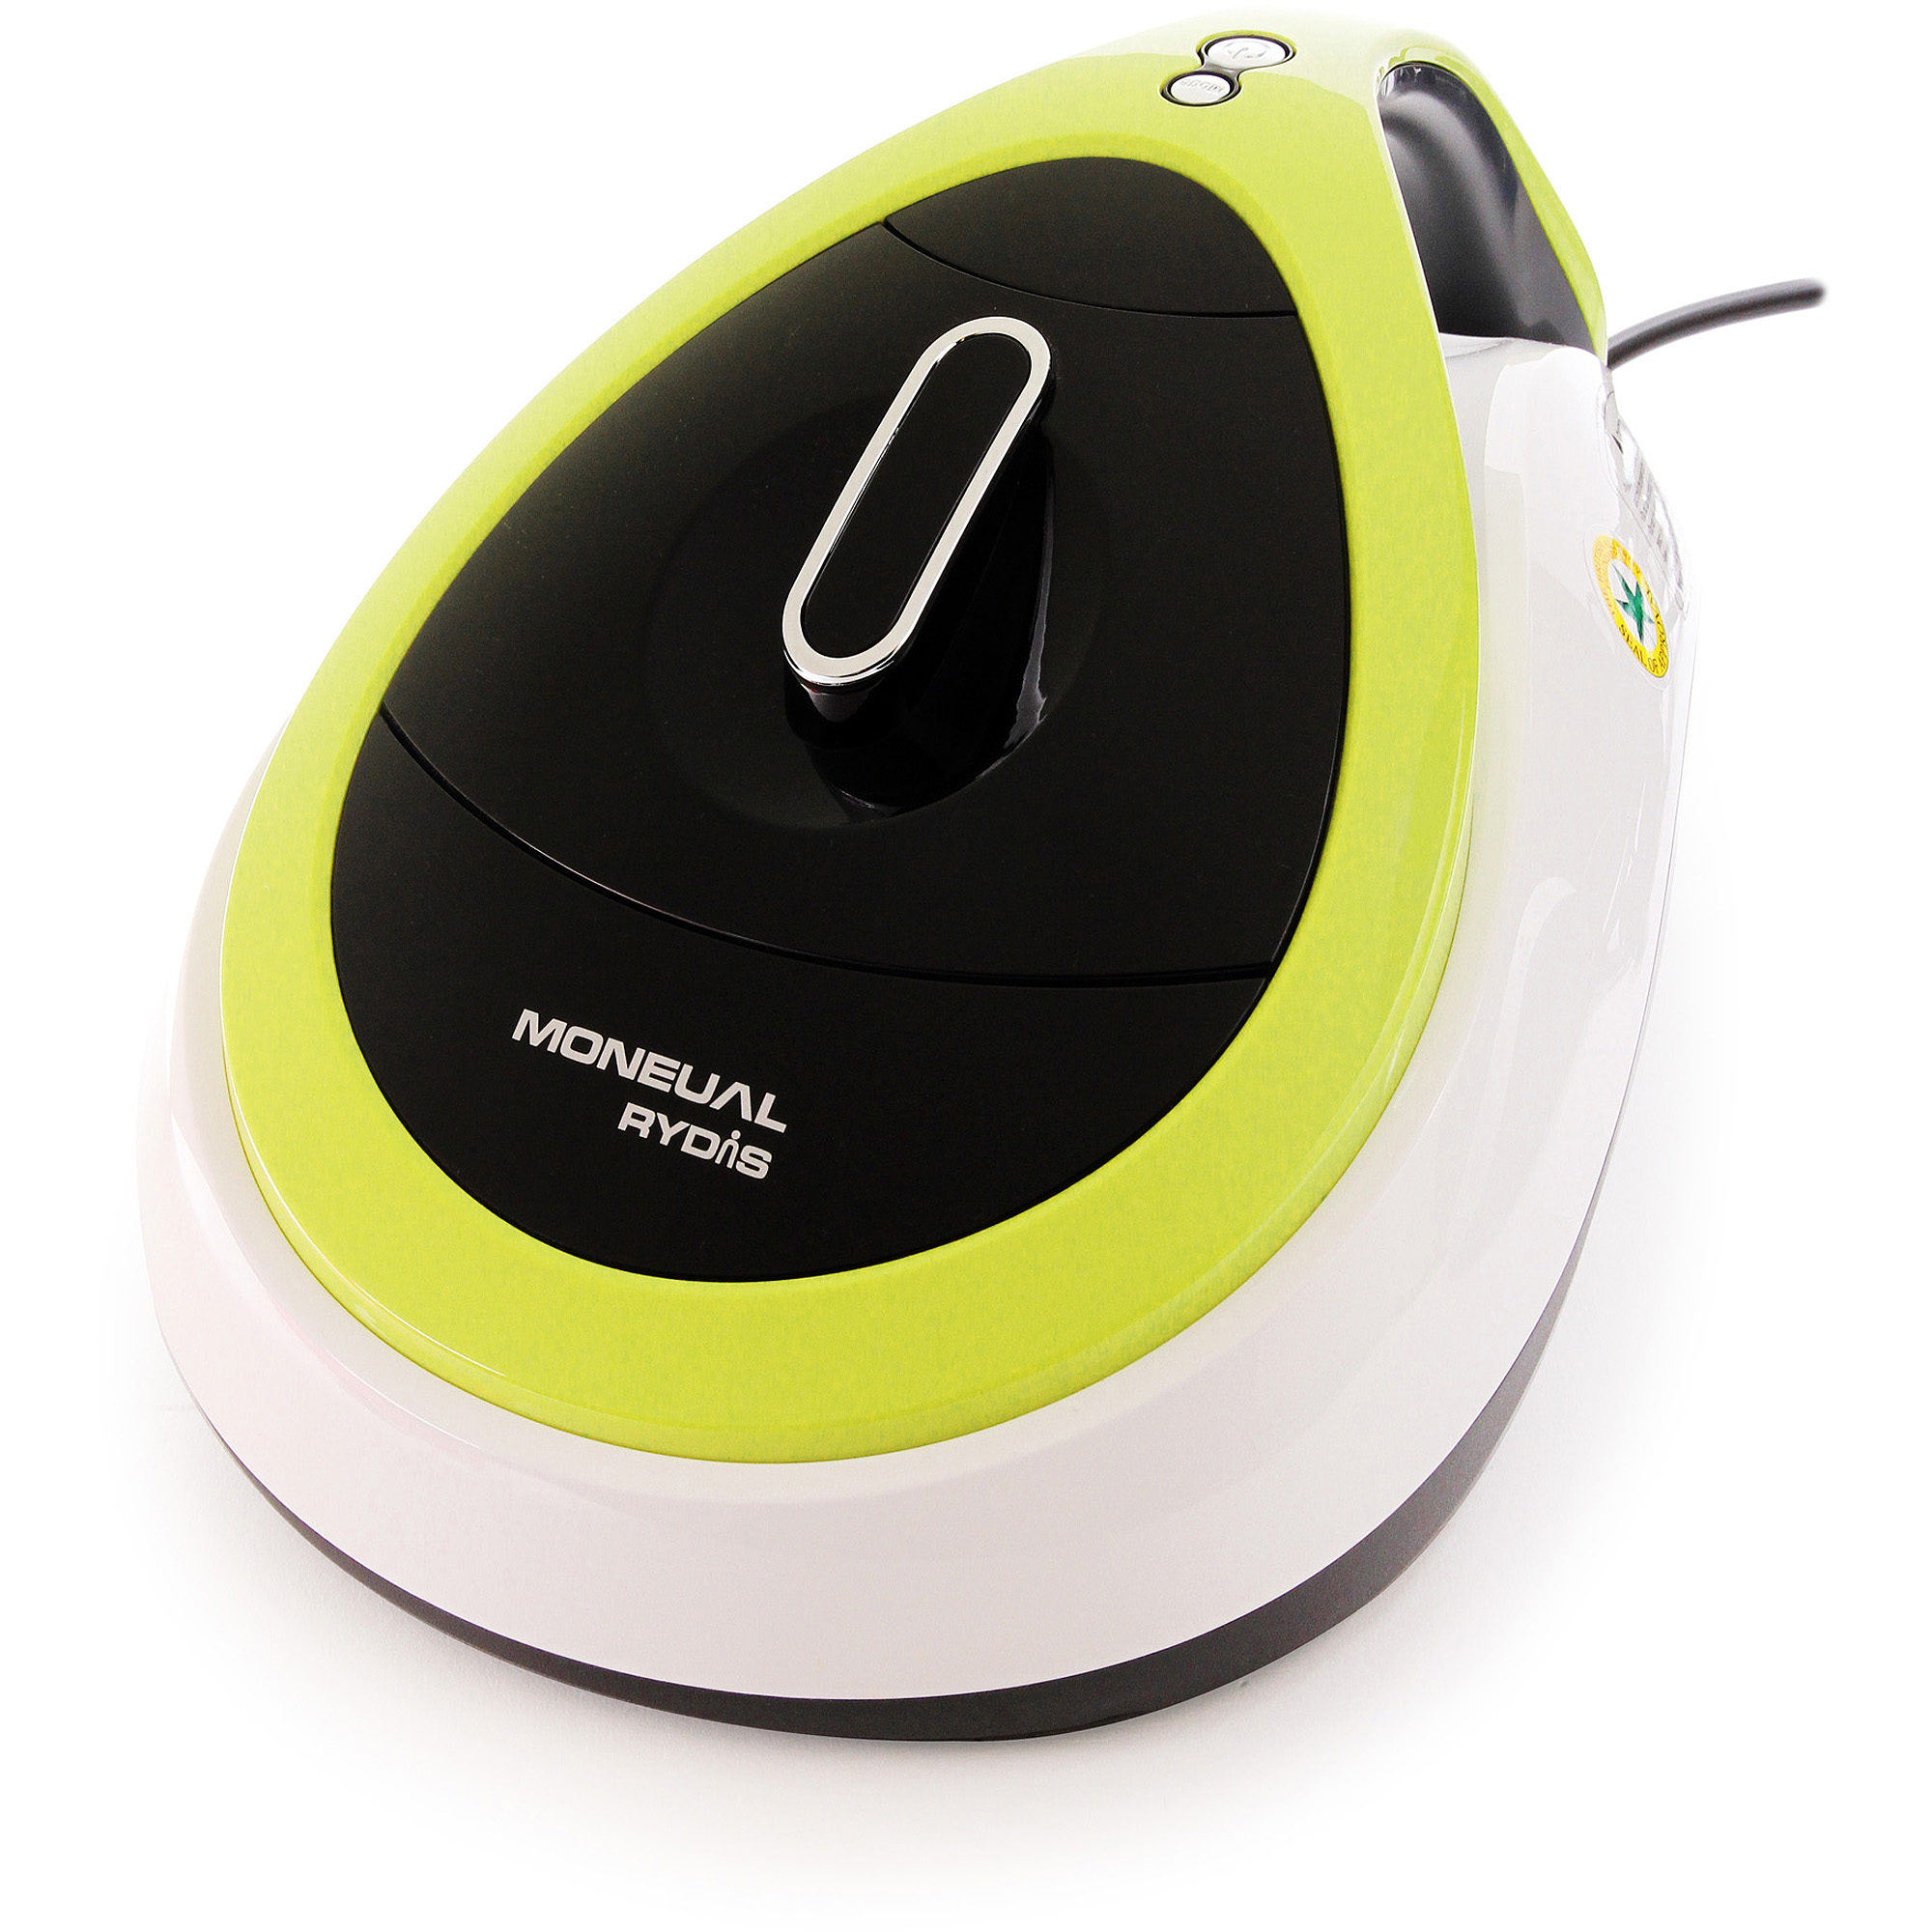 Moneual Rydis UV-C Vacuum Cleaner, U60